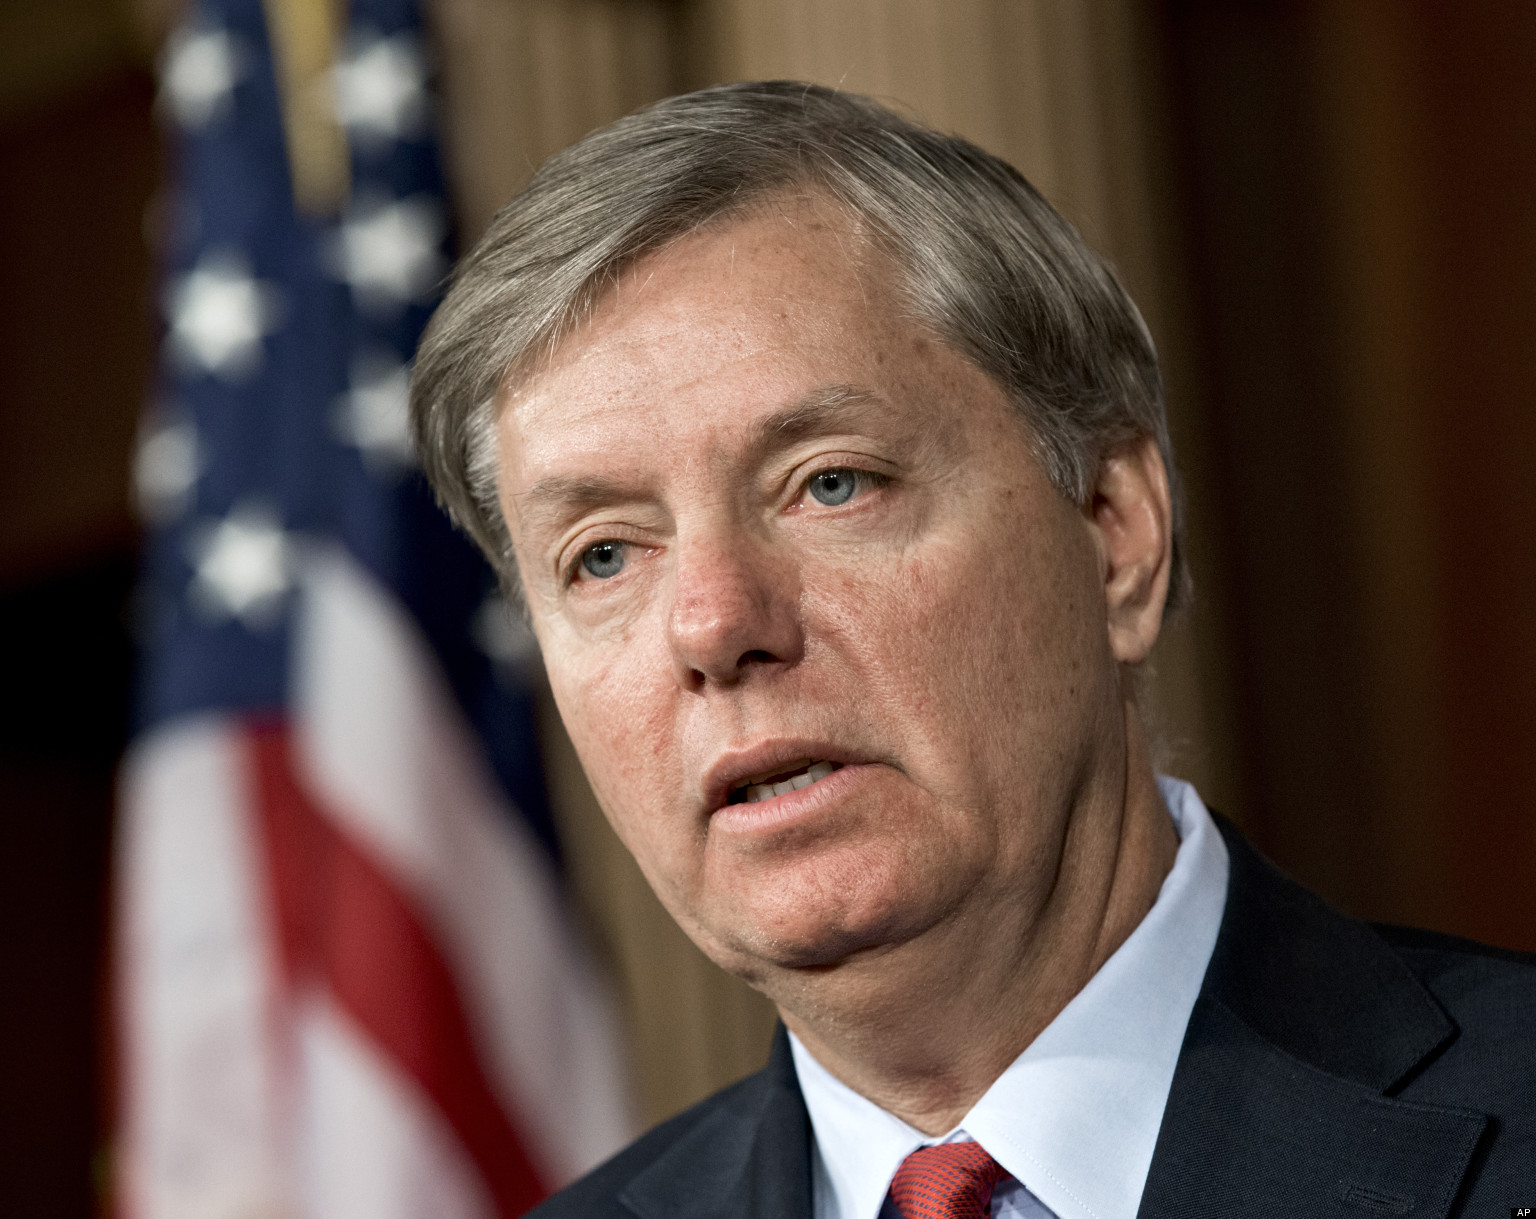 http://i.huffpost.com/gen/964479/thumbs/o-LINDSEY-GRAHAM-IMMIGRATION-facebook.jpg